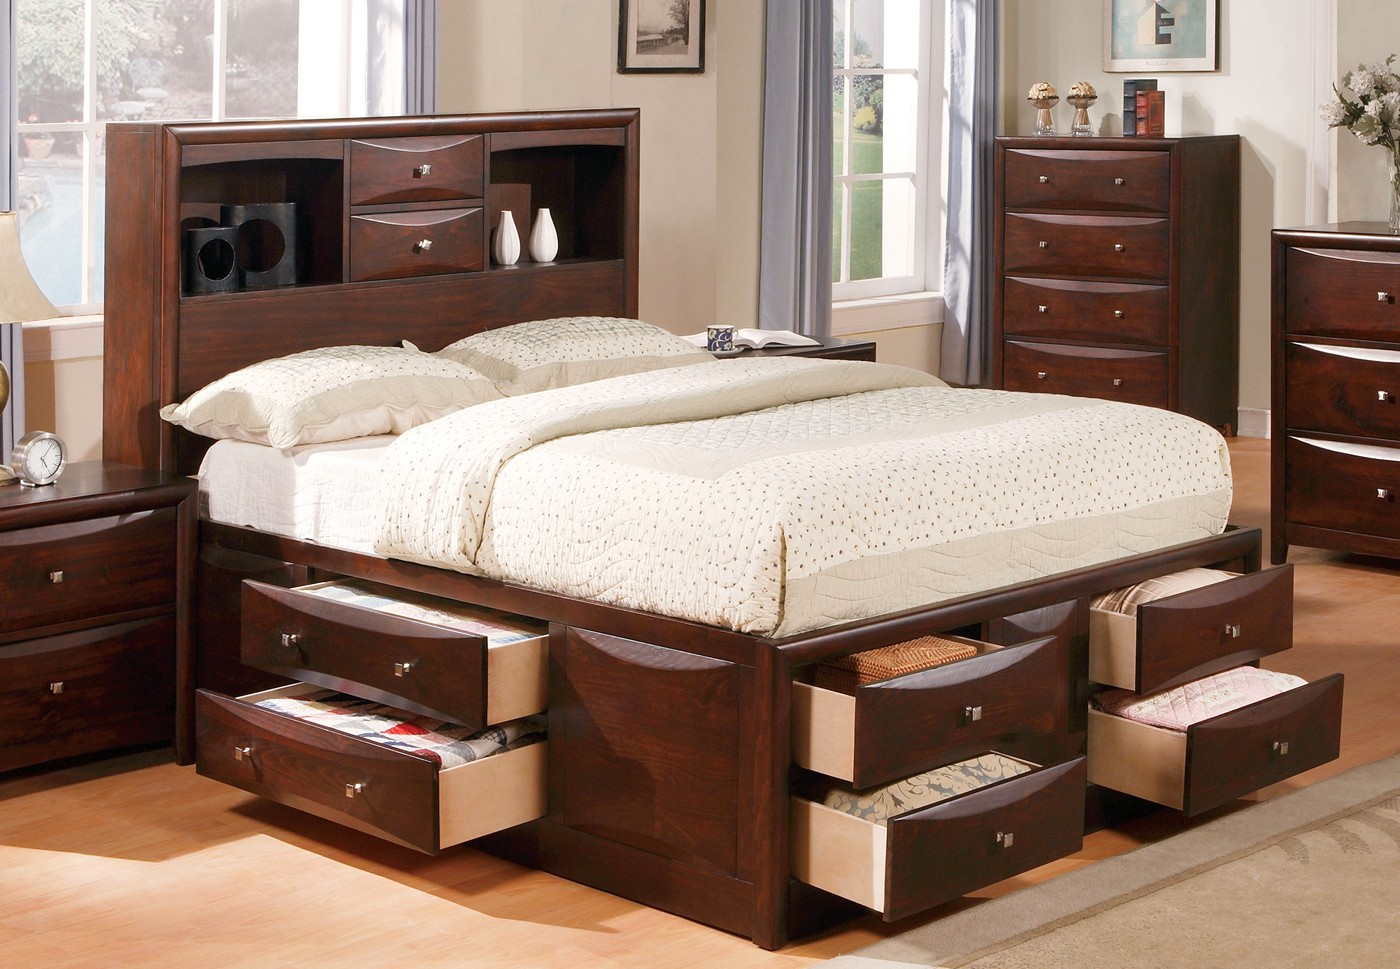 Hudson casual 4 pc cal king storage bed set in brown - Espresso brown bedroom furniture ...